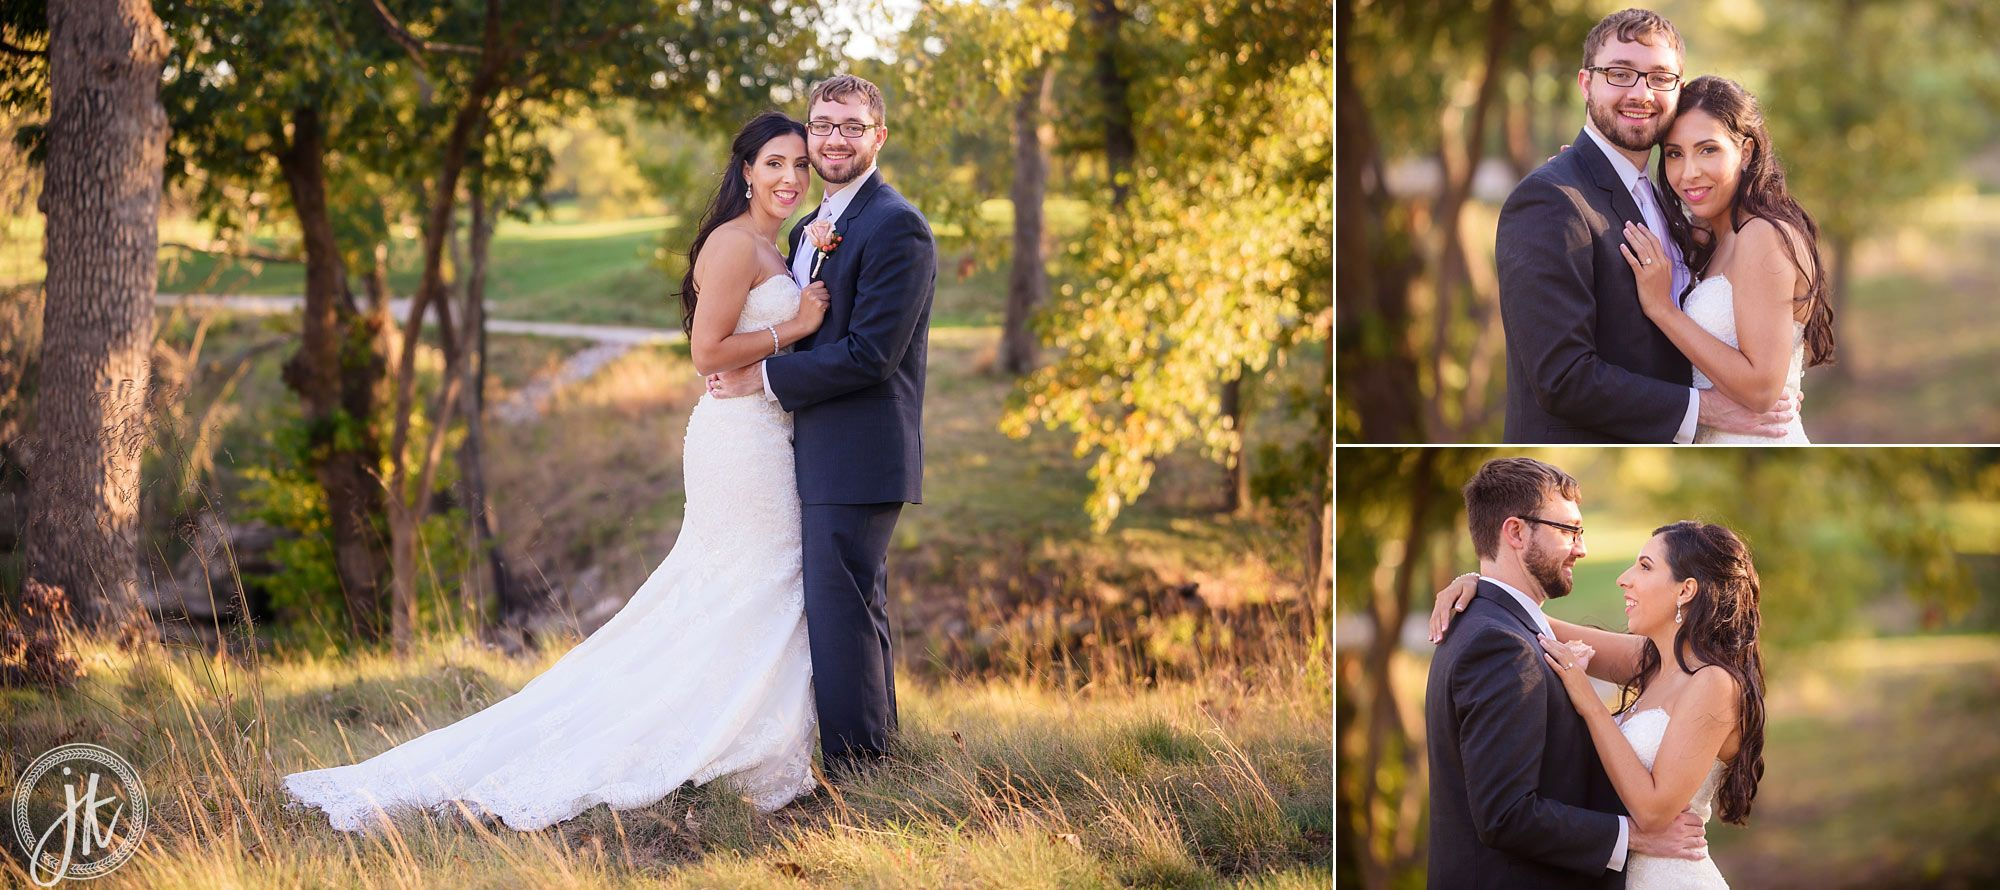 Scenic wedding portraits with bride and groom at columbia country